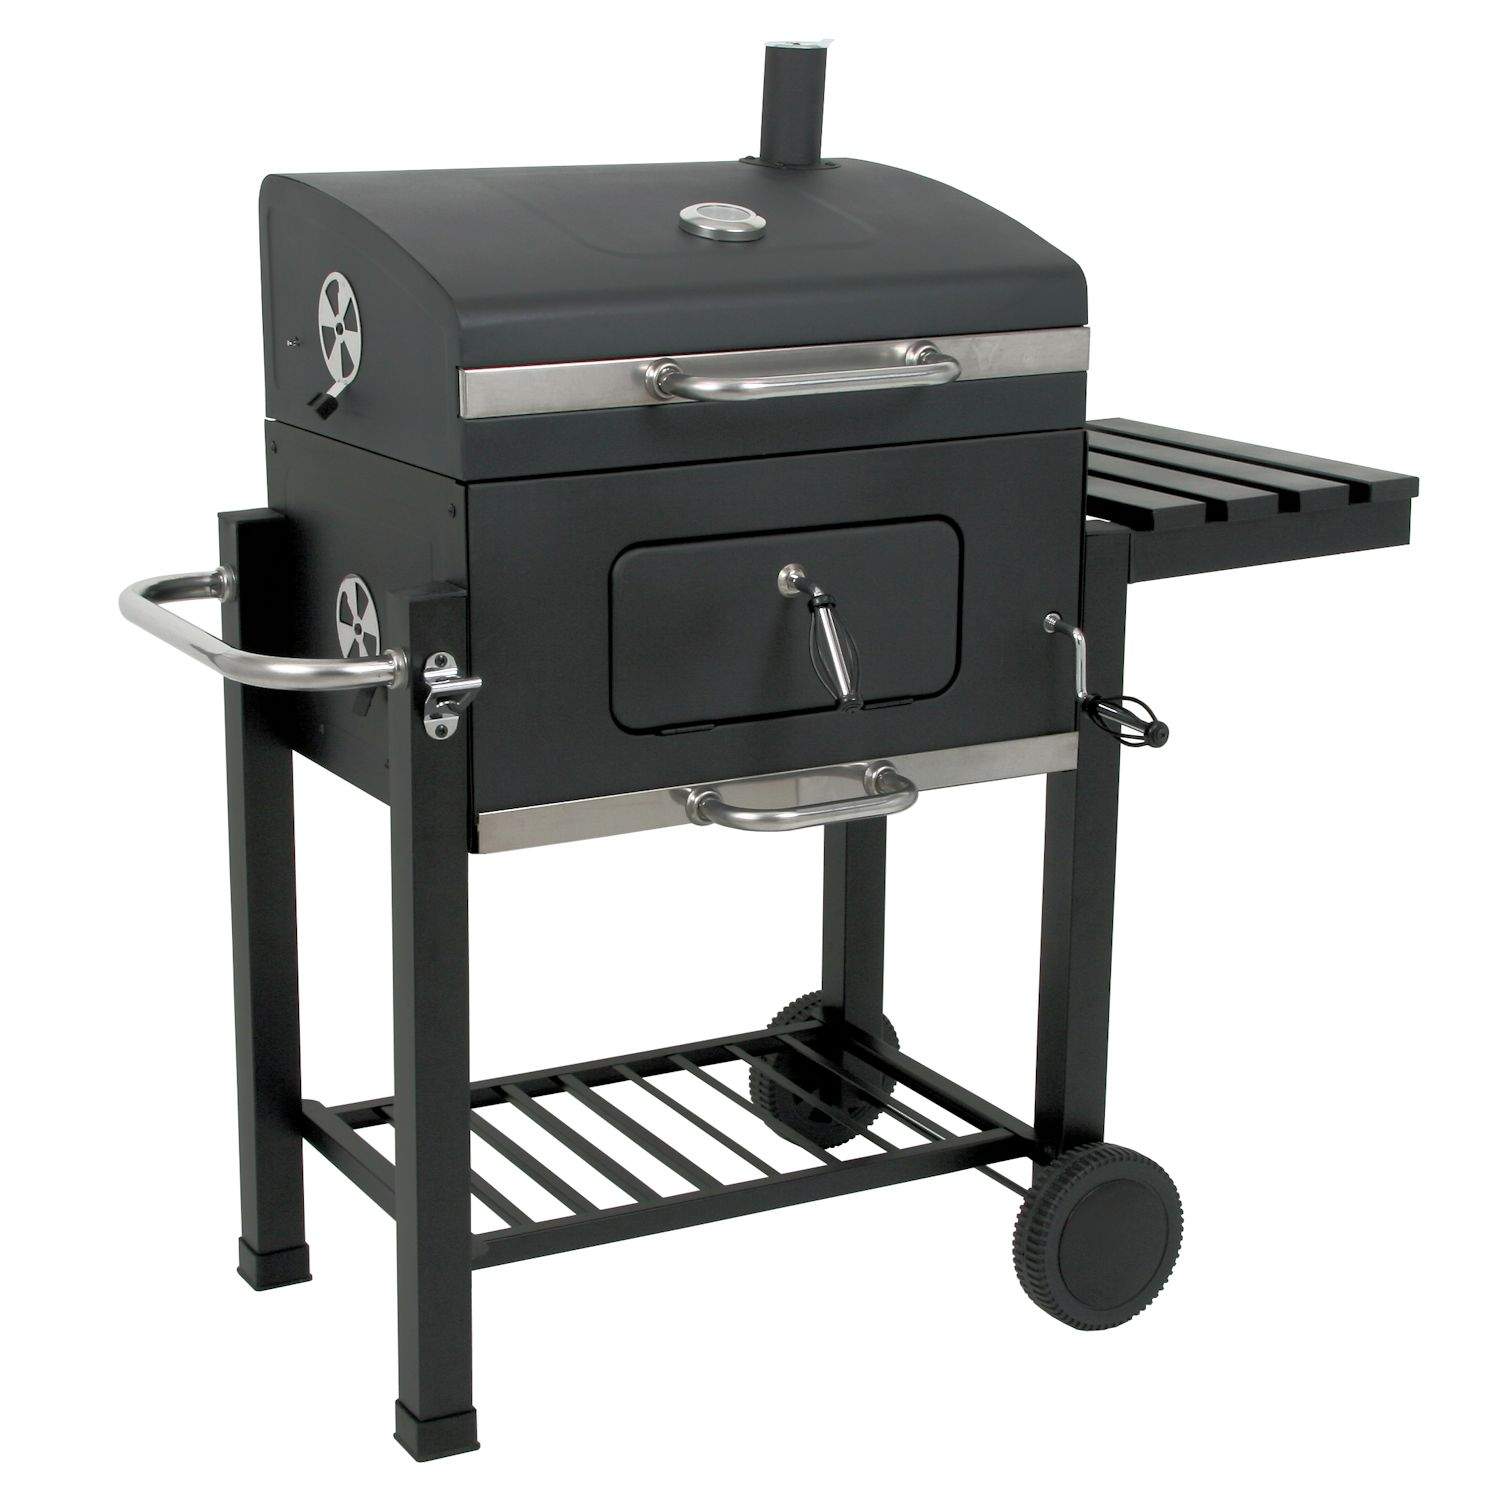 BBQ-Bull-034-Black-Oak-034-Smoker-Holzkohle-BBQ-Grillwagen-Barbecue-Grill